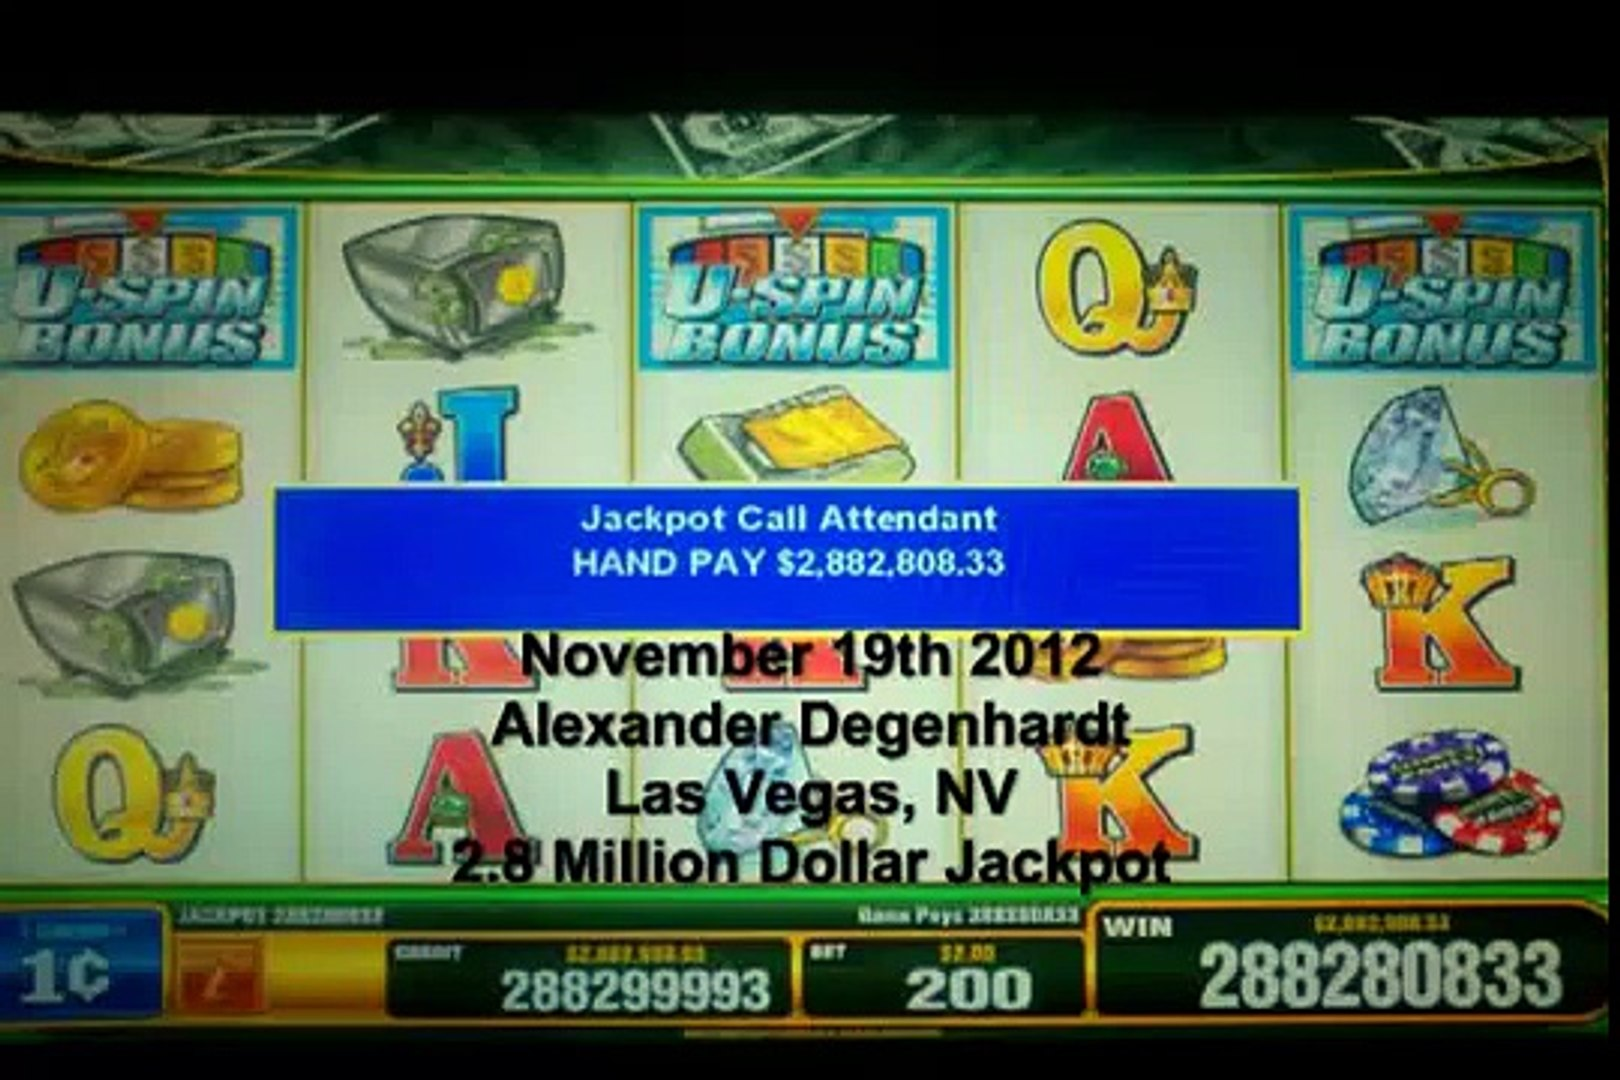 Marine wins 2 8 Million Dollar Jackpot